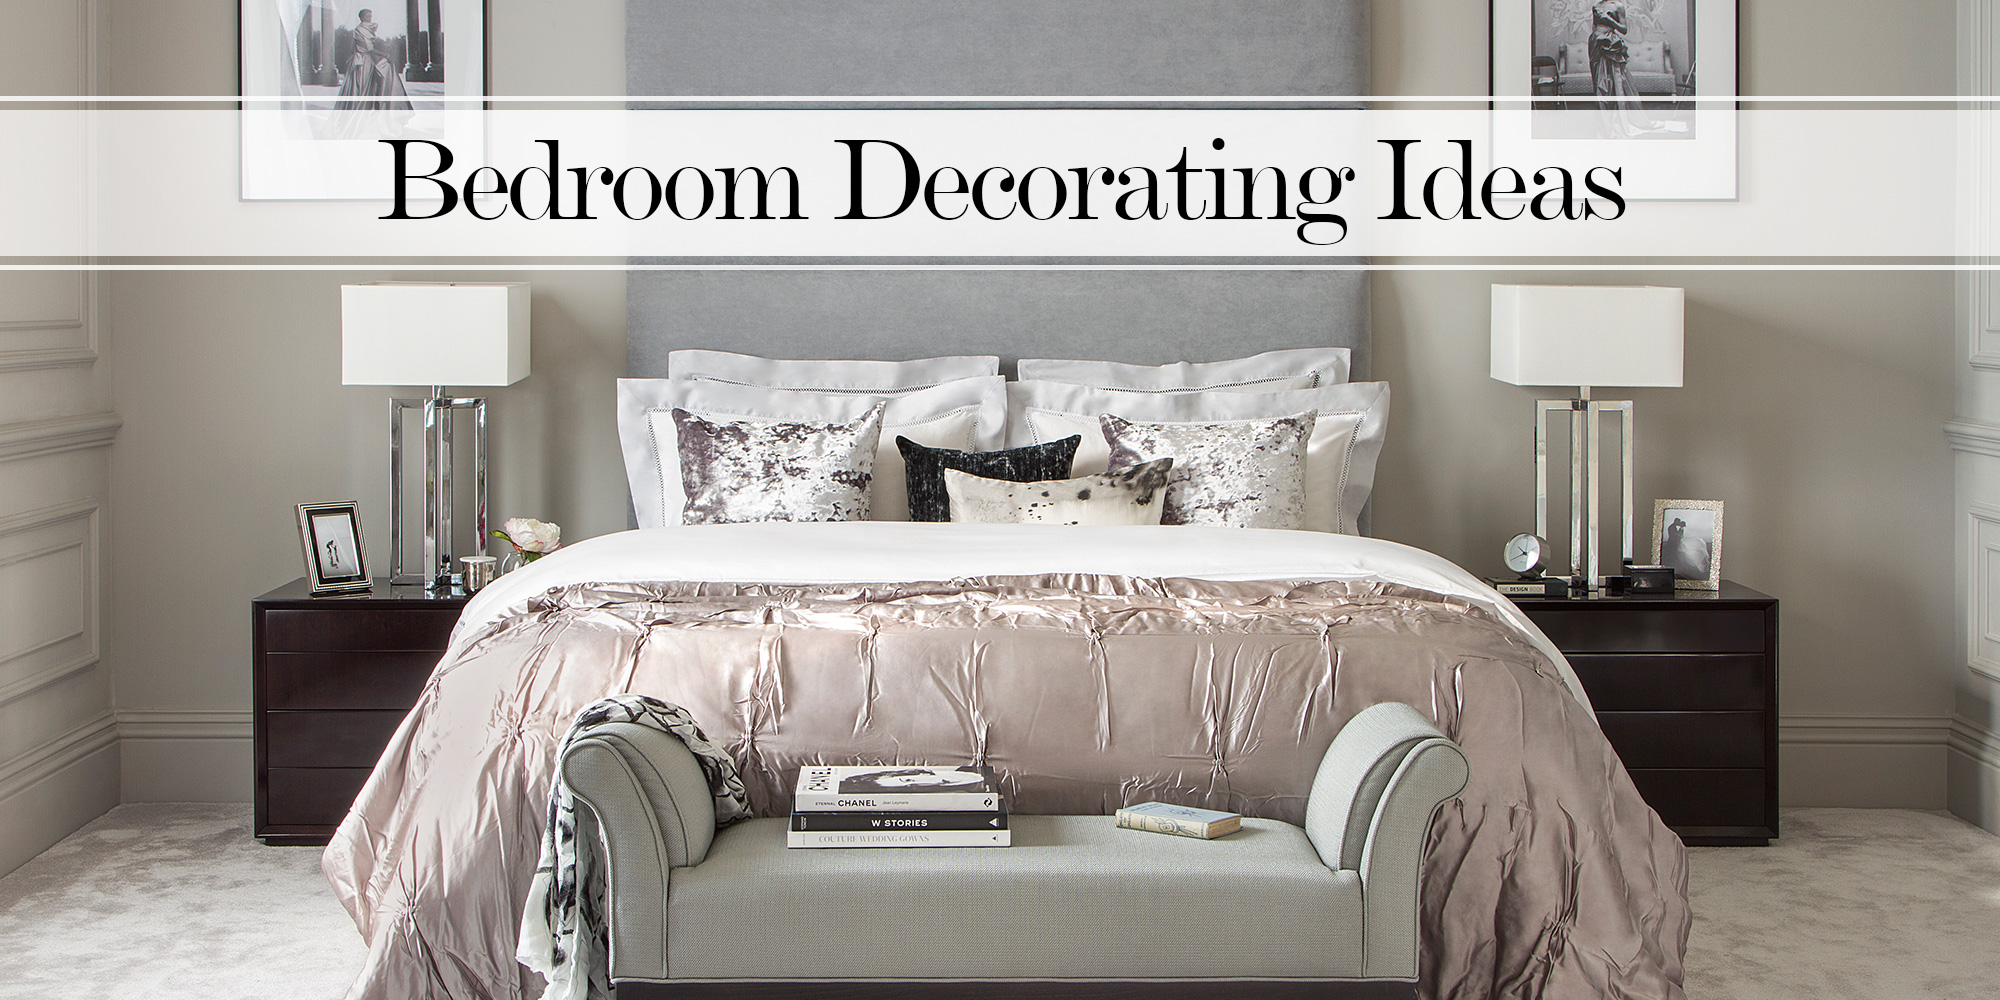 Bedroom Decorating Ideas 51 Inspirational Bedroom Design Ideas